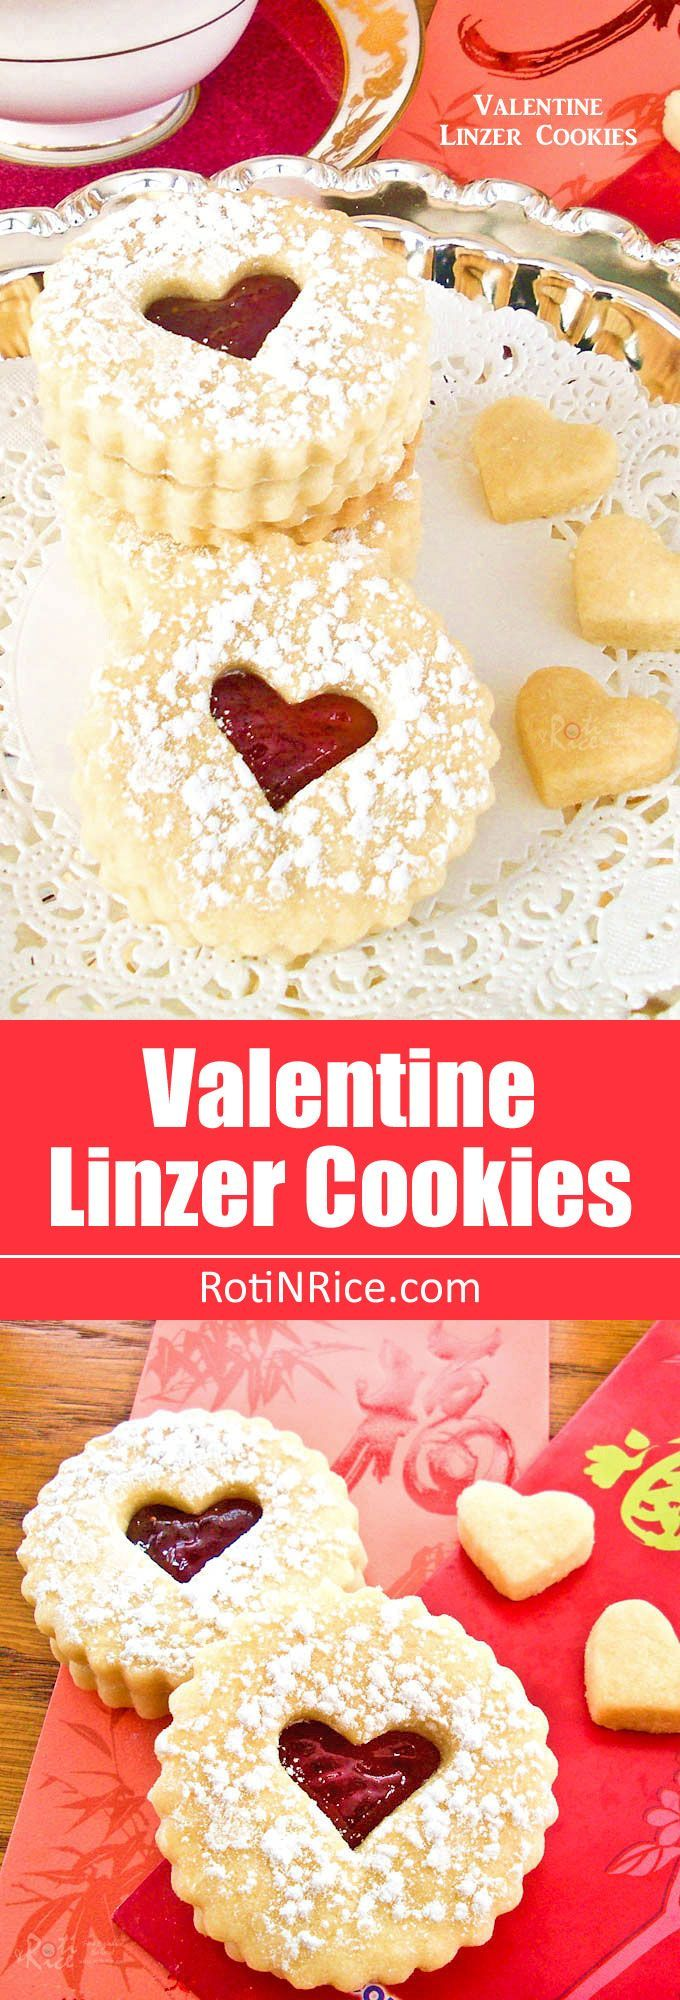 Buttery egg-free Valentine Linzer Cookies with strawberry jam for your sweetie on Valentine's Day. Perfect with a cup of tea. | http://RotiNRice.com